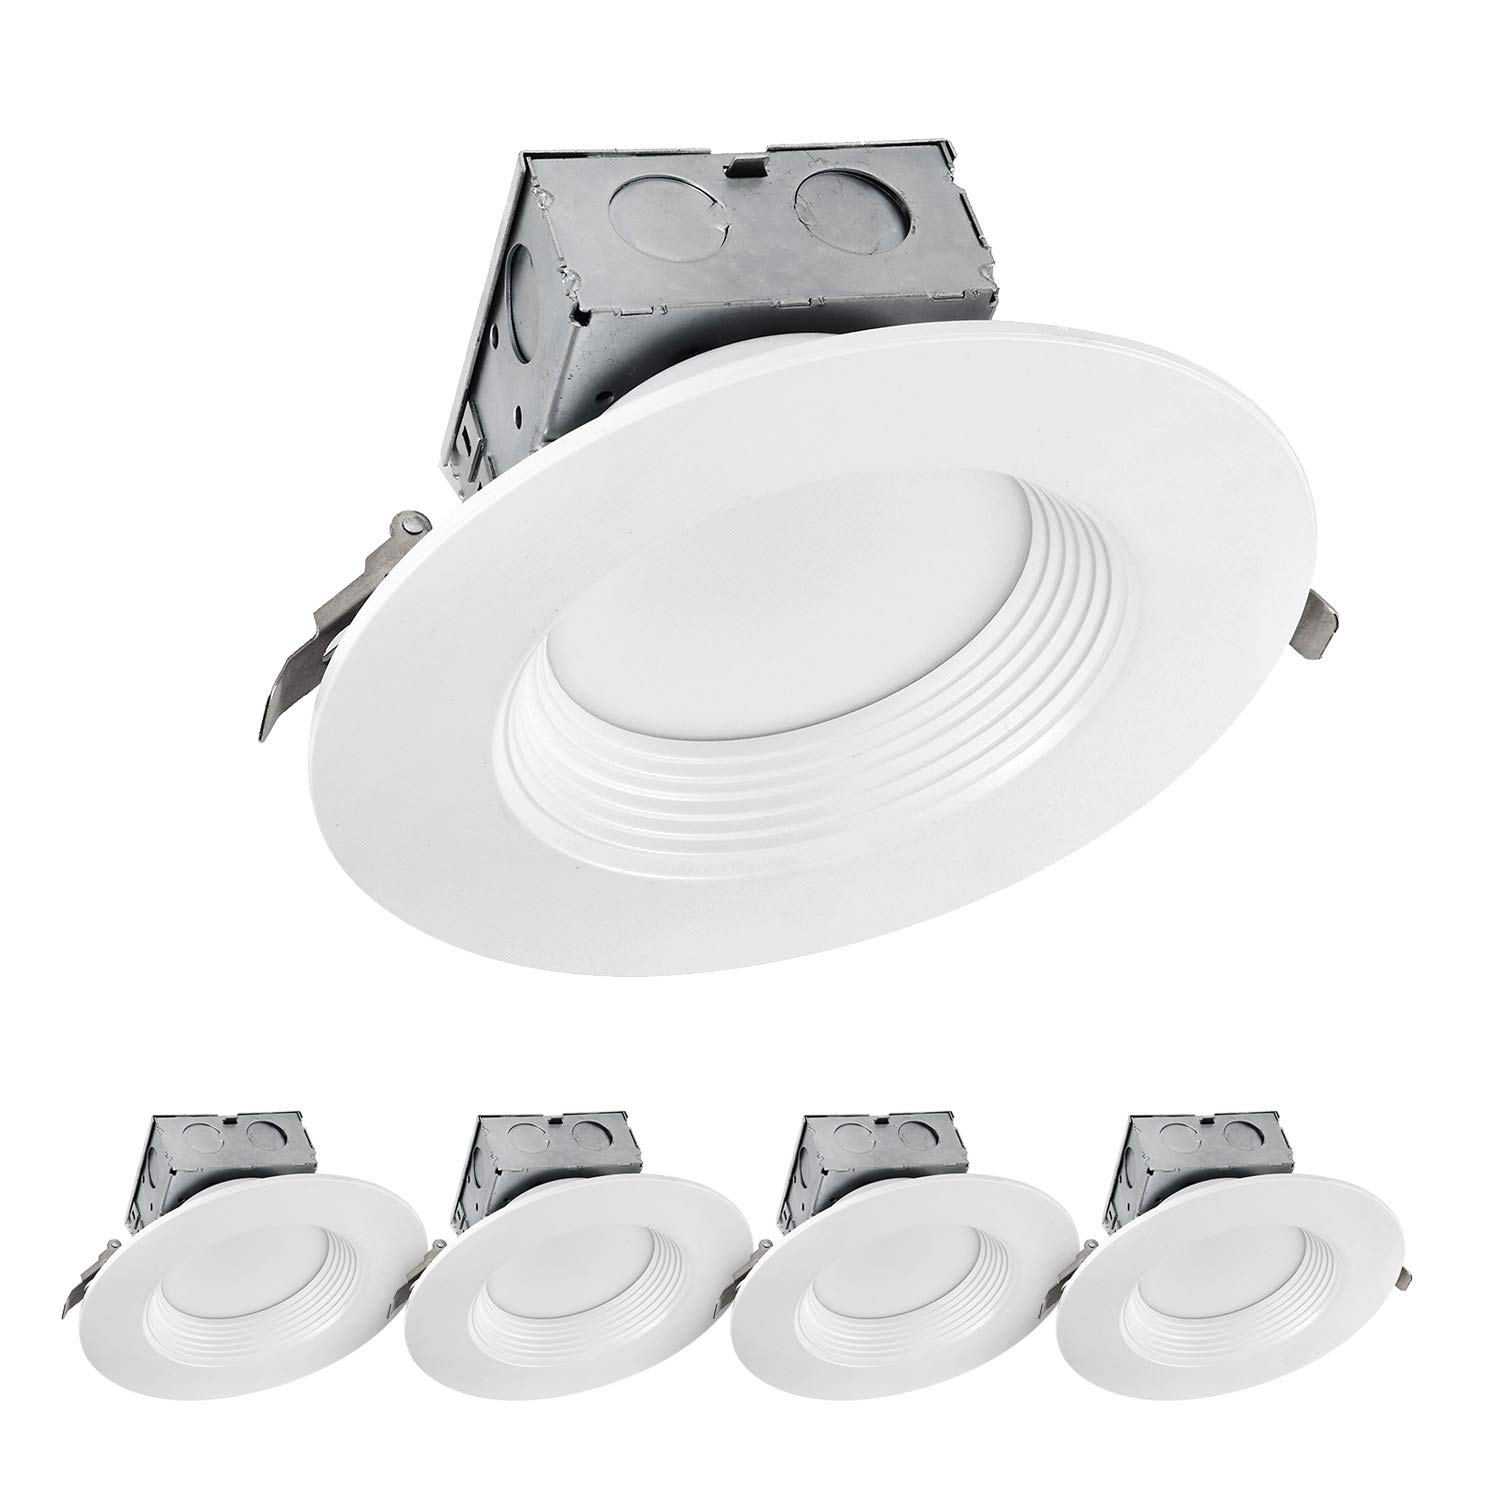 LUXTER (4 Pack) 6 inch LED Ceiling Recessed Downlight With Junction Box, LED Canless Downlight, Baffle Trim, Dimmable, IC Rated, 15W(120Watt Repl) 4000K 1100Lm Wet Location ETL and Energy Star Listed